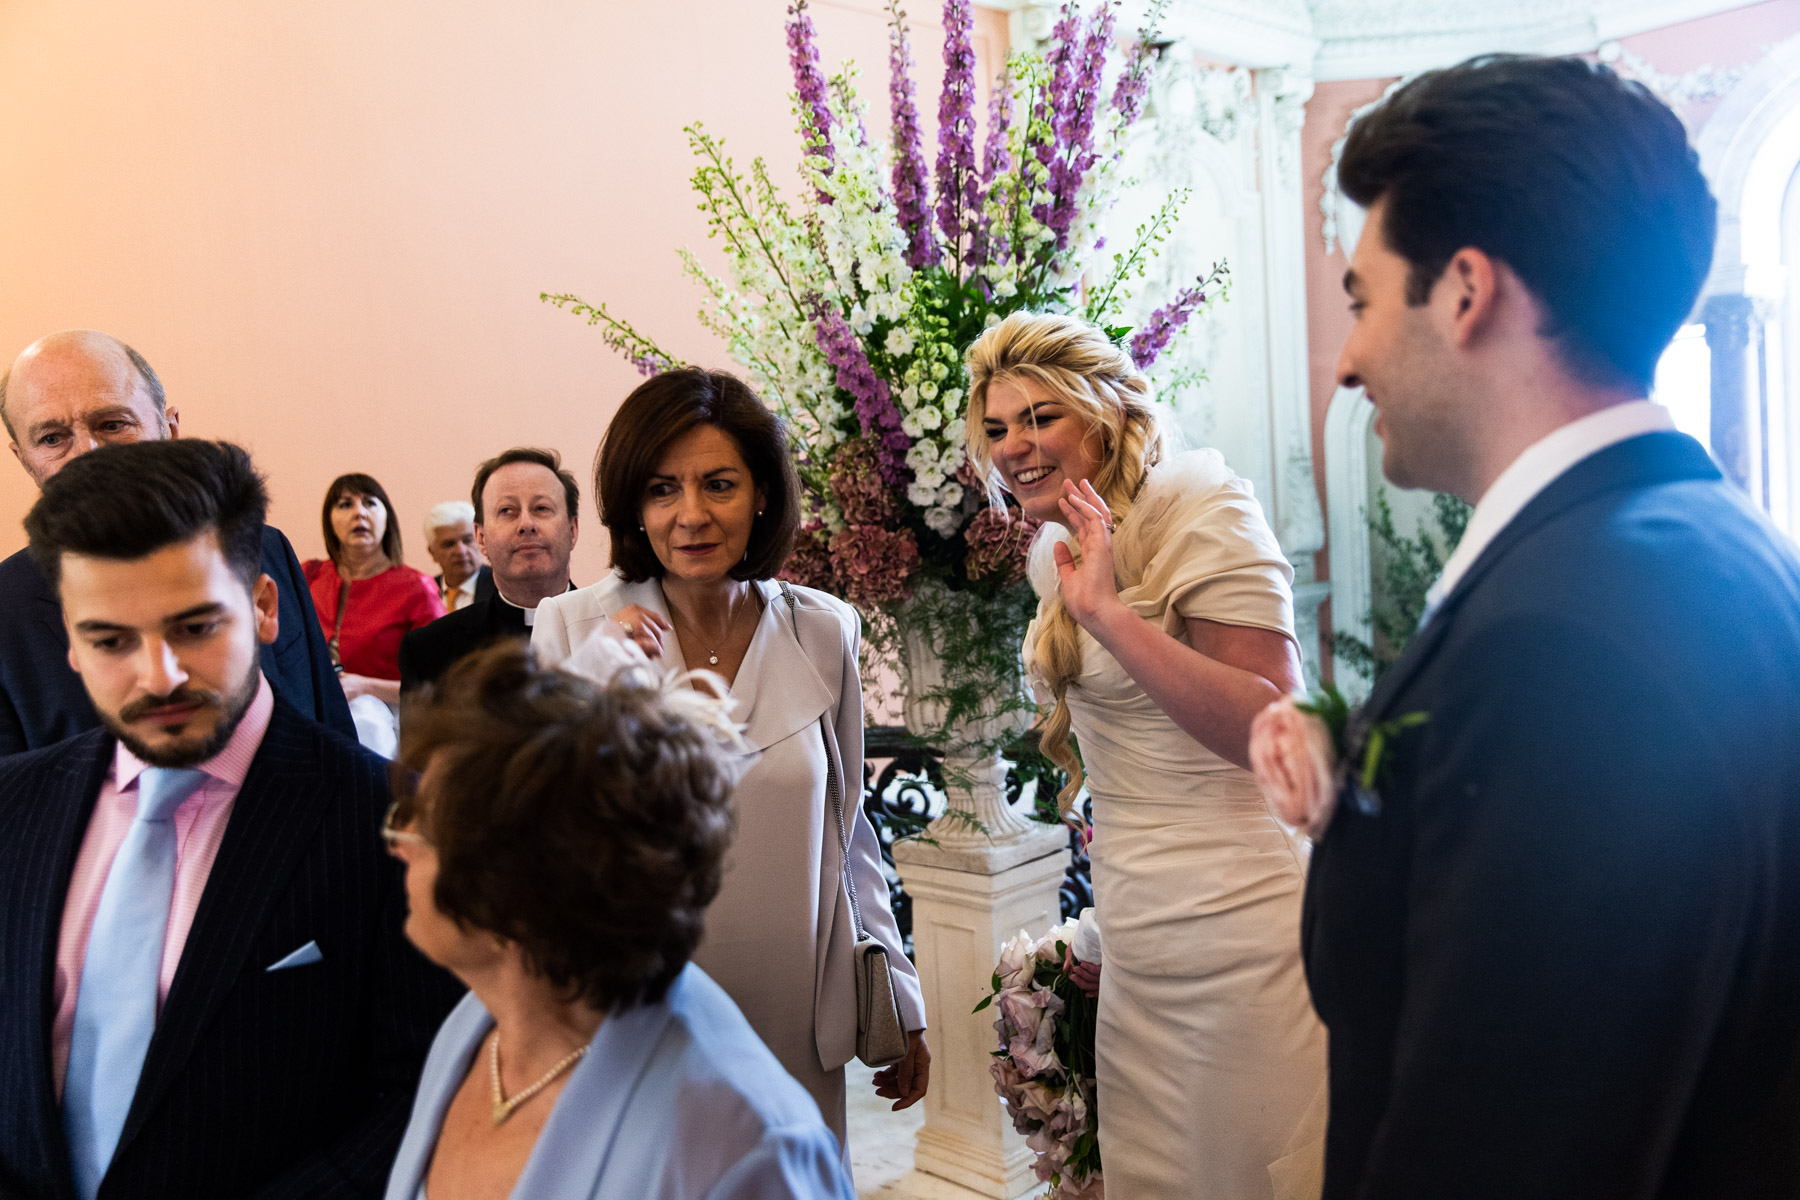 Relaxed bride and groom greeting guests